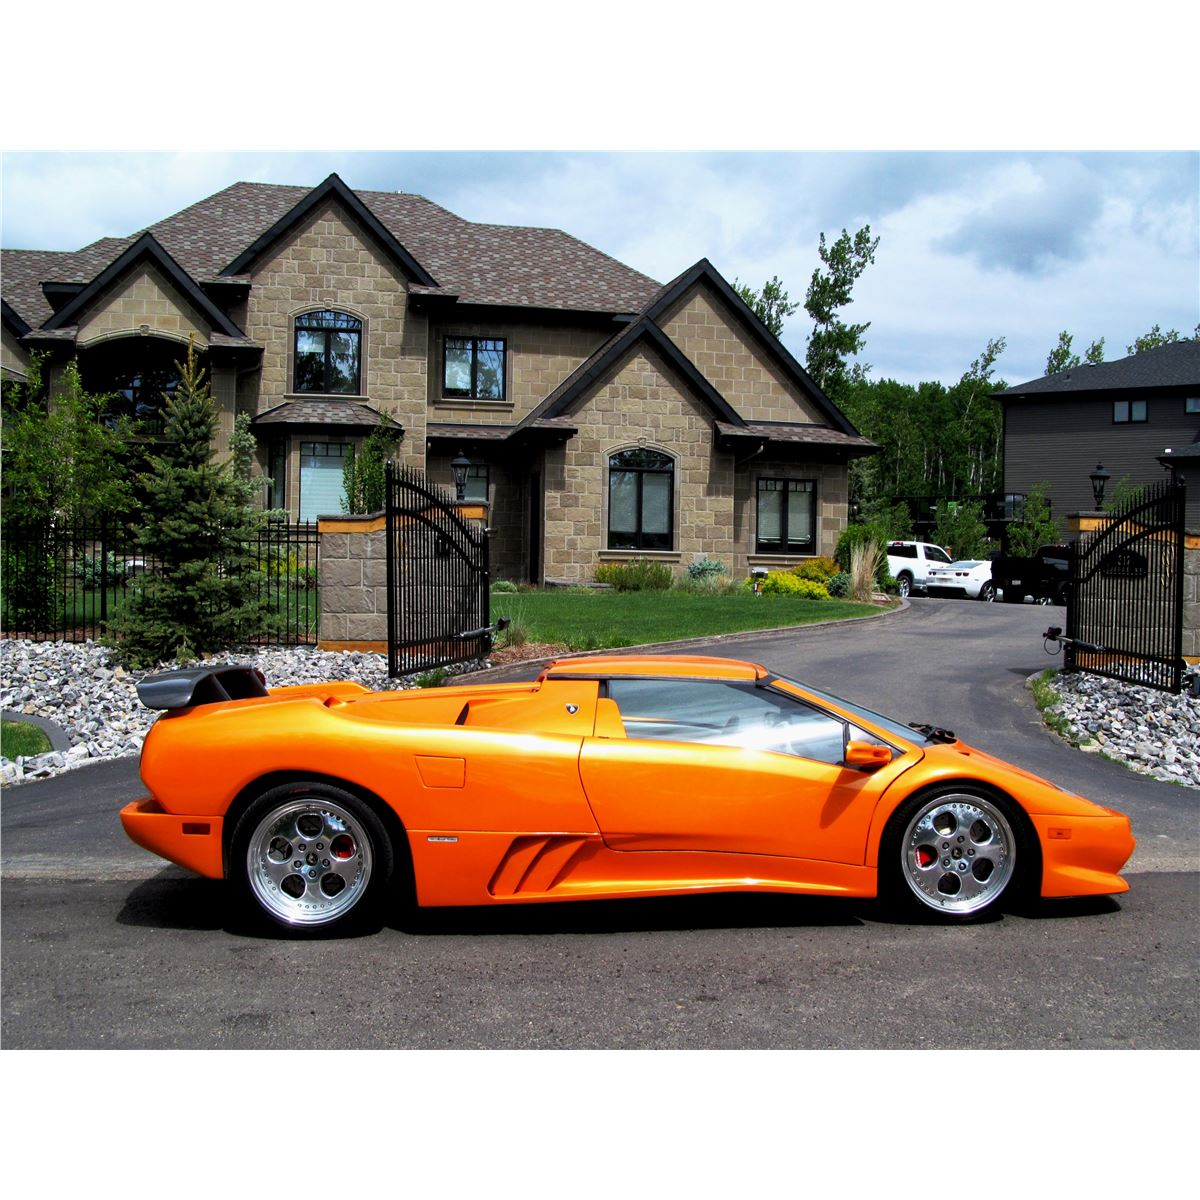 2011 LAMBORGHINI DIABLO ROADSTER NORTH AMERICAN EXOTIC